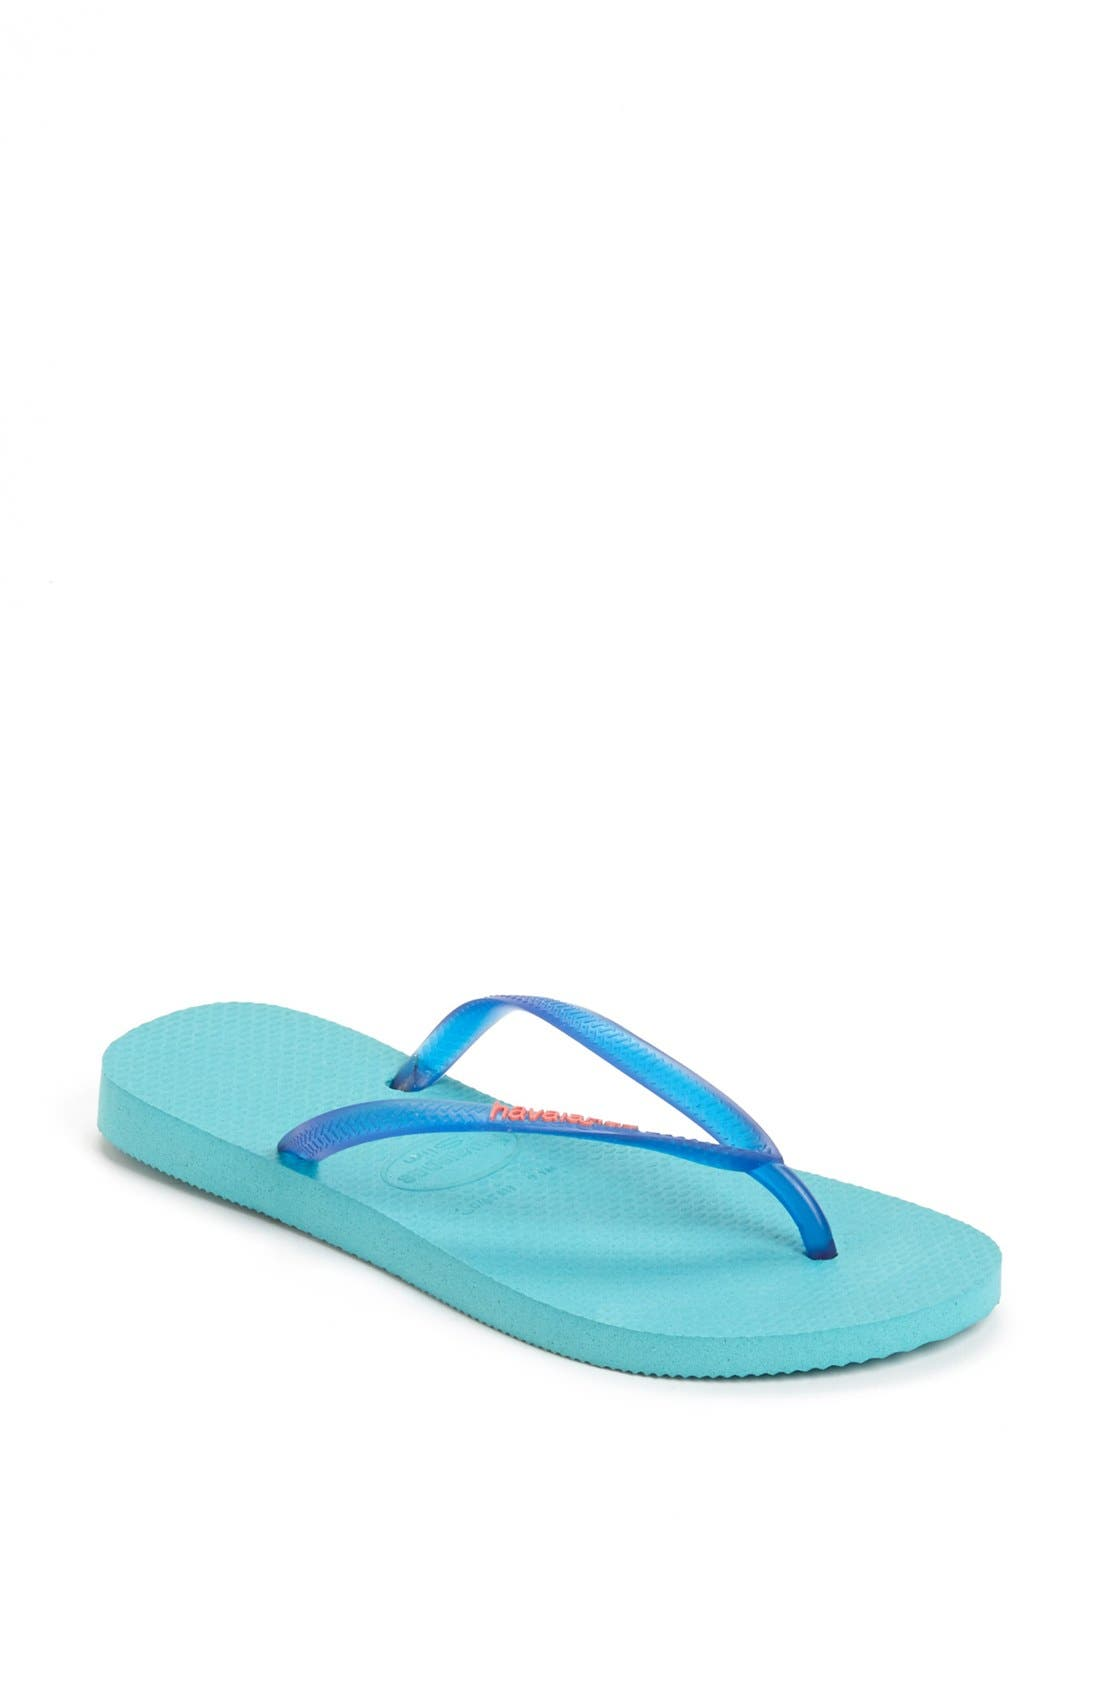 Alternate Image 1 Selected - Havaianas 'Slim' Logo Flip Flop (Women)